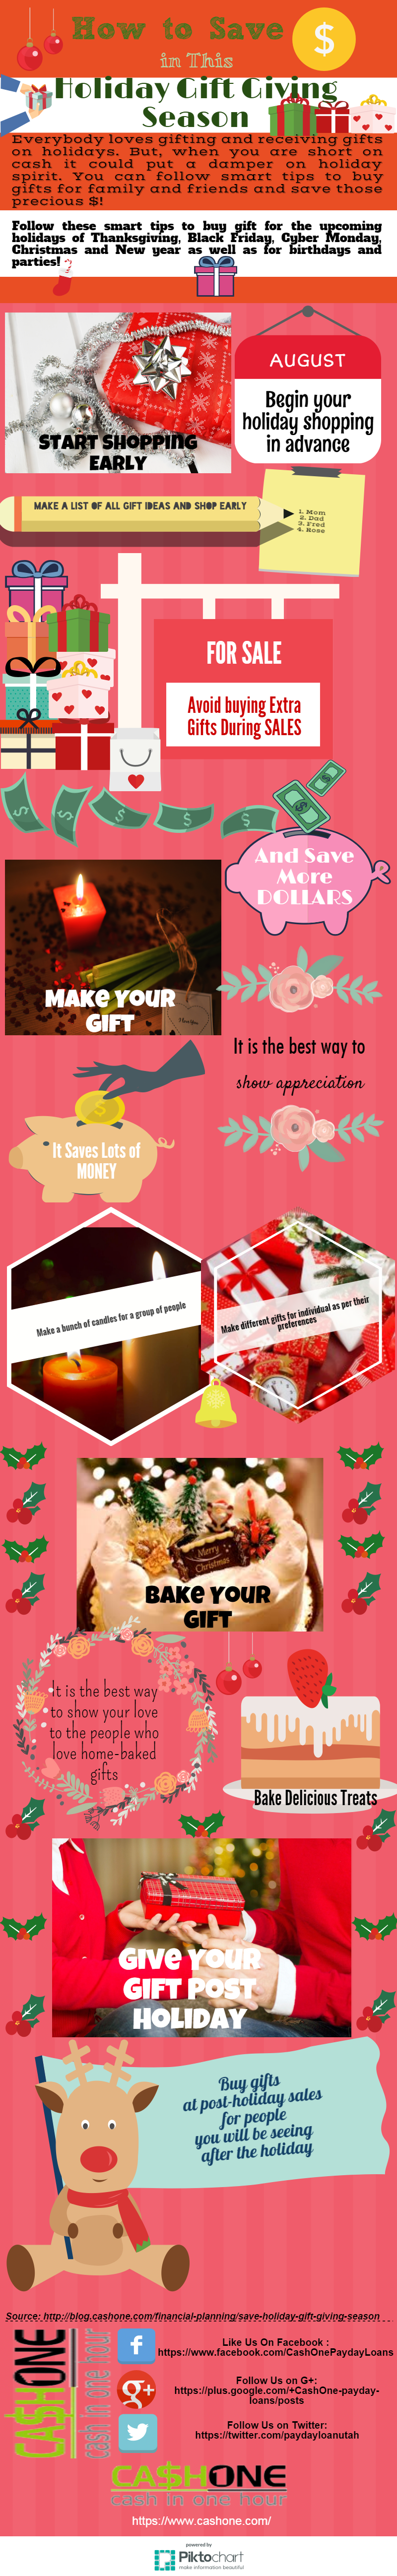 How to Save $ in This Holiday Gift Giving Season Infographic